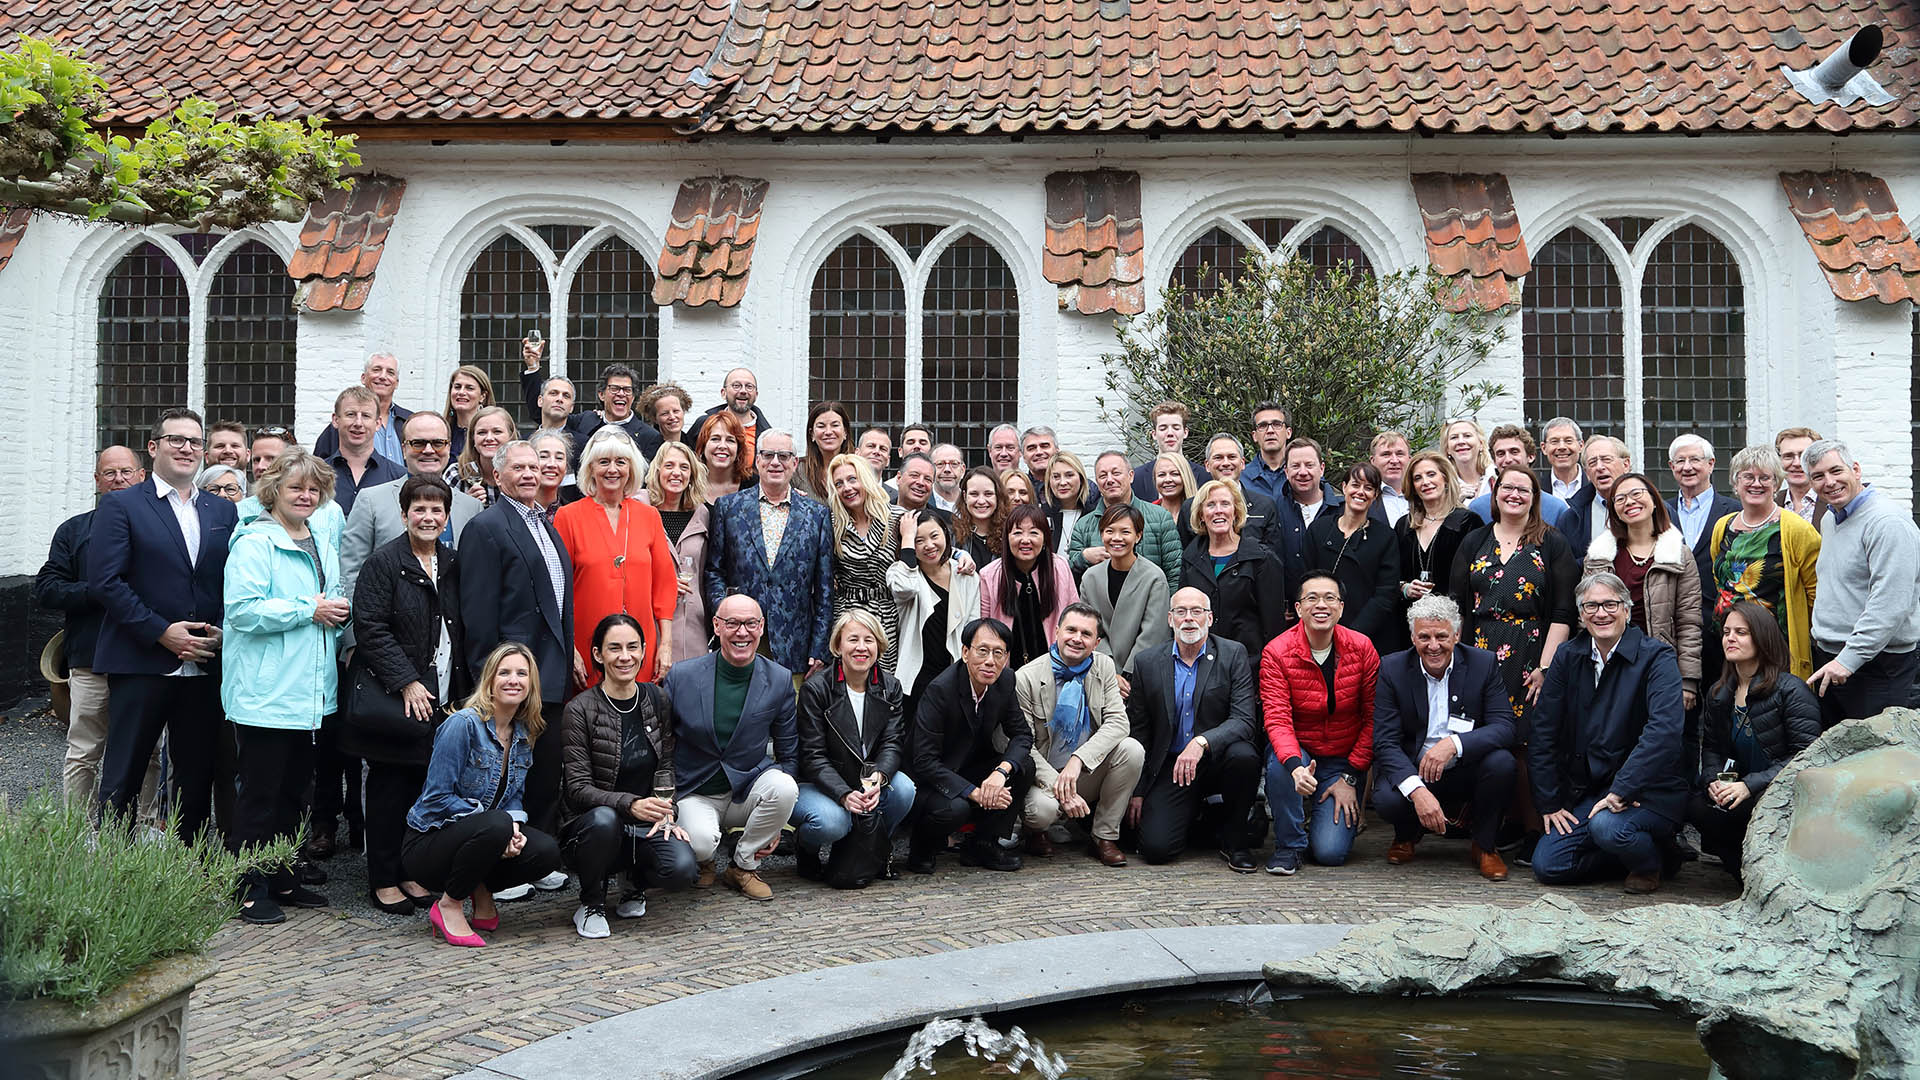 PRGN held its bi-annual meeting in Amersfoort, the Netherlands, between May 16-18, 2019